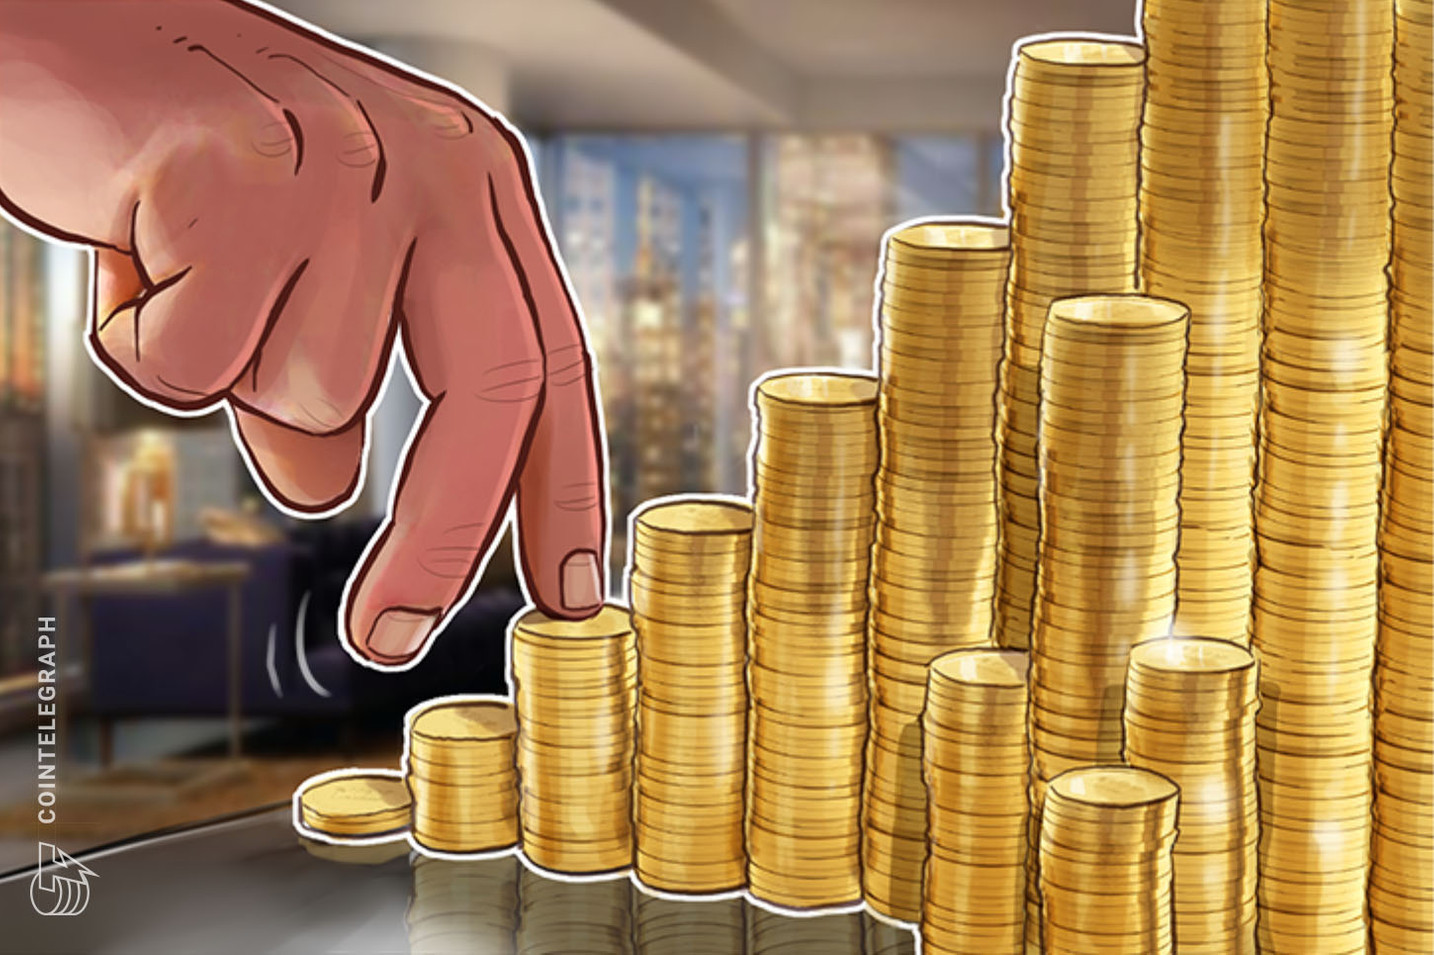 University of Michigan Endowment Ups Investment in Andreessen Horowitz Crypto Venture Fund